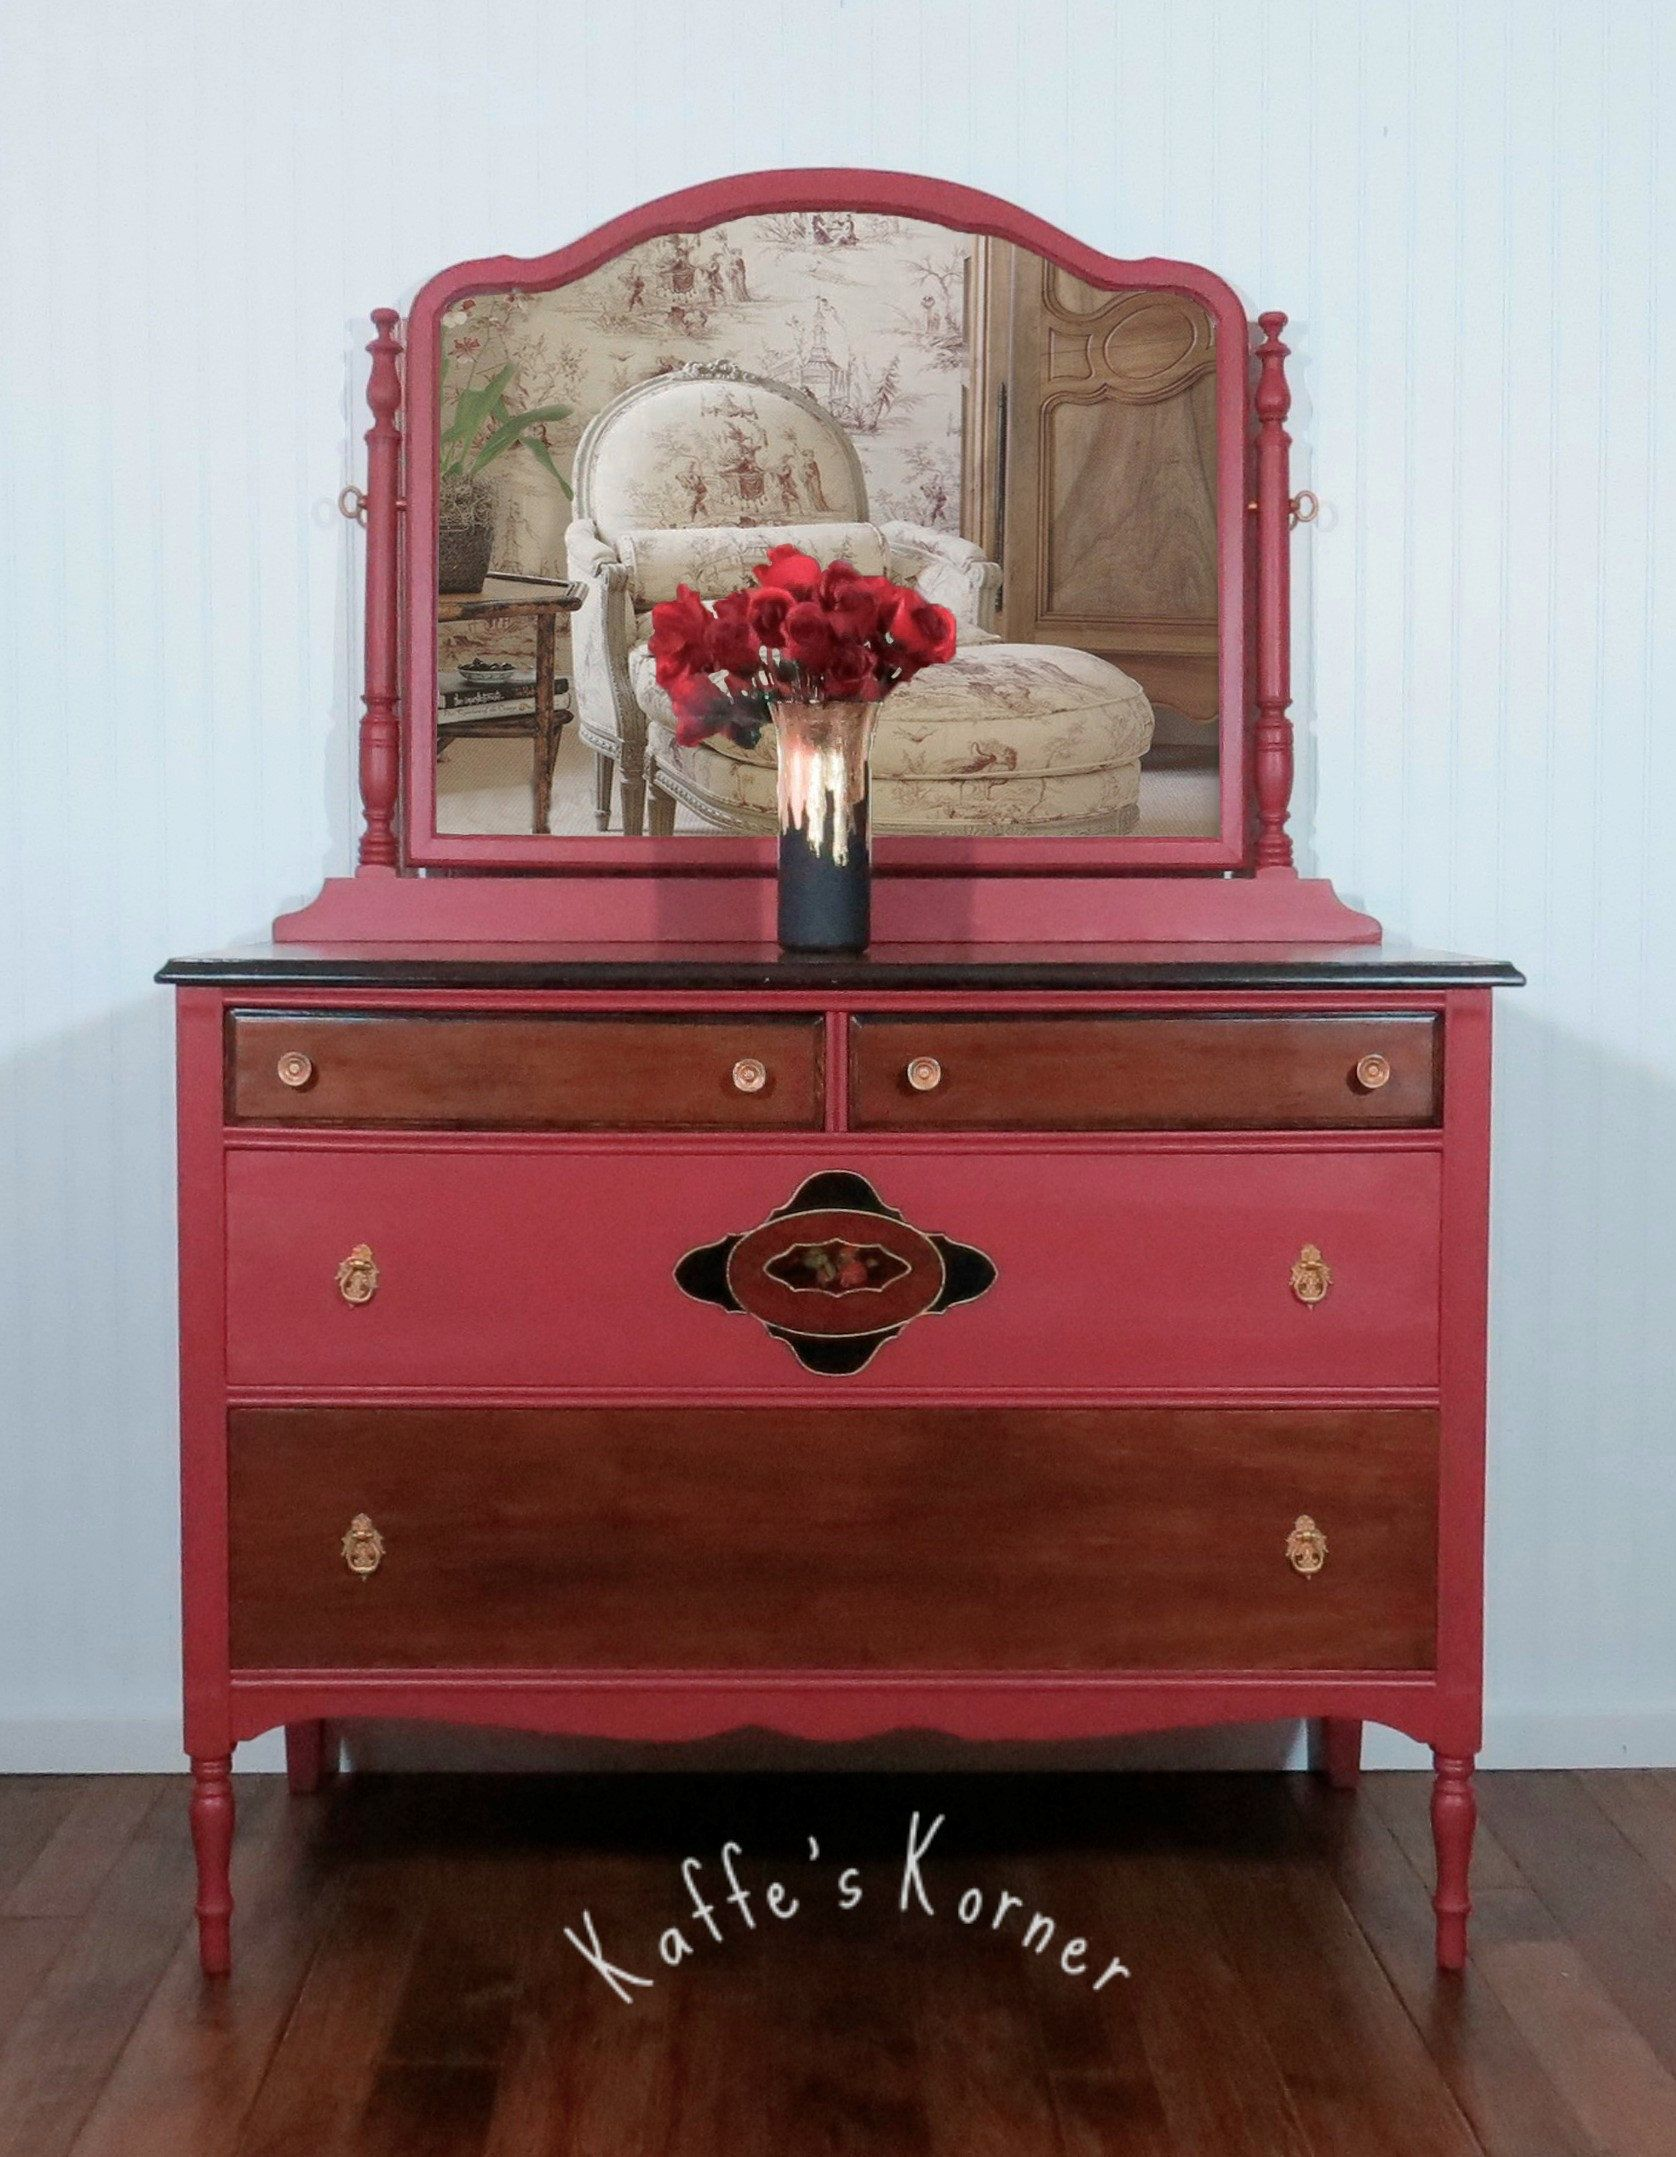 Mirror furniture repair Near Me 1940s Era Vintage Dresser With Mirror Drawer Chest Of Drawers Pinterest 1940s Era Vintage Dresser With Mirror Drawer Chest Of Drawers